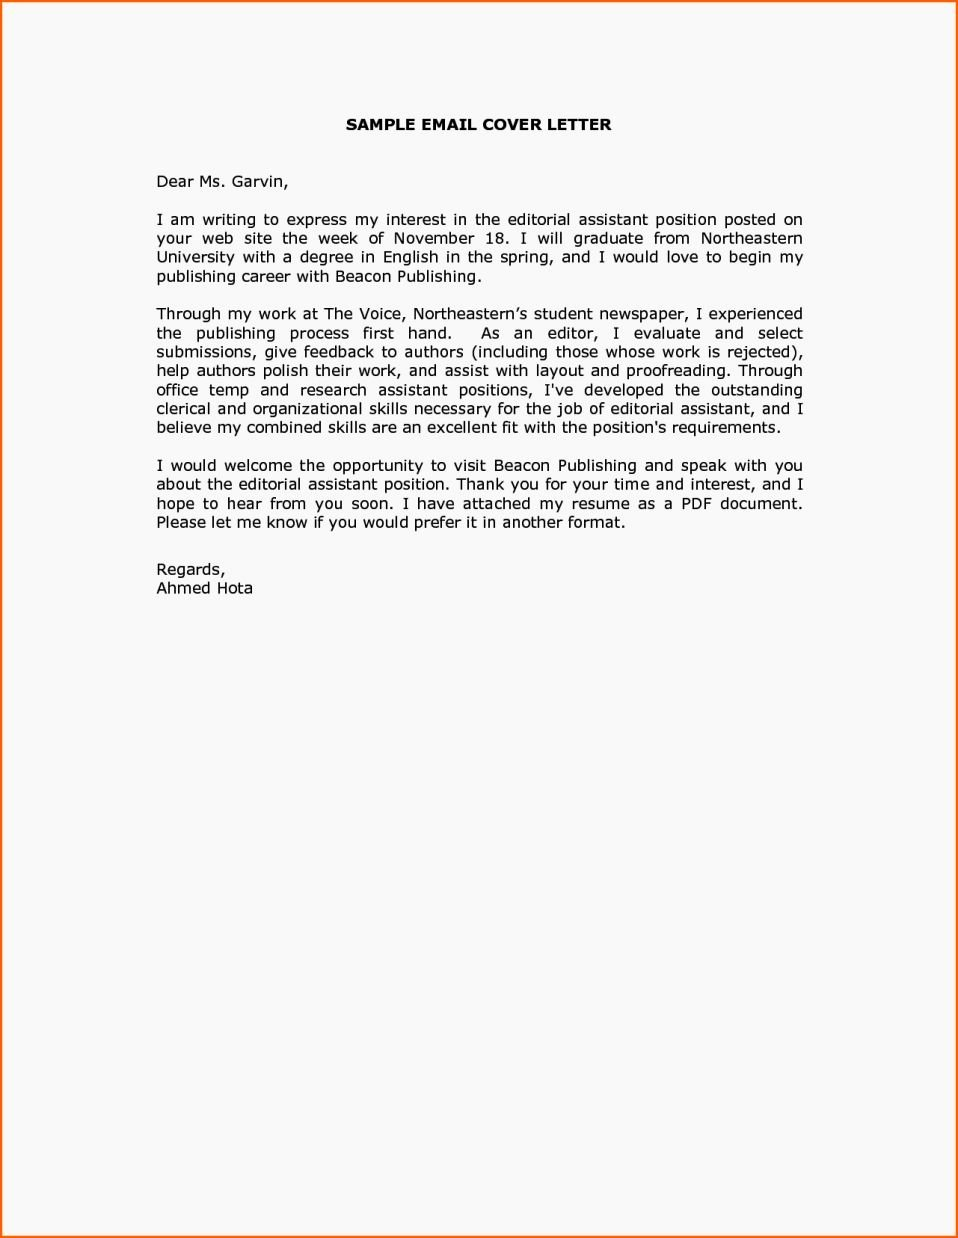 Cover Letter Sample Email Message